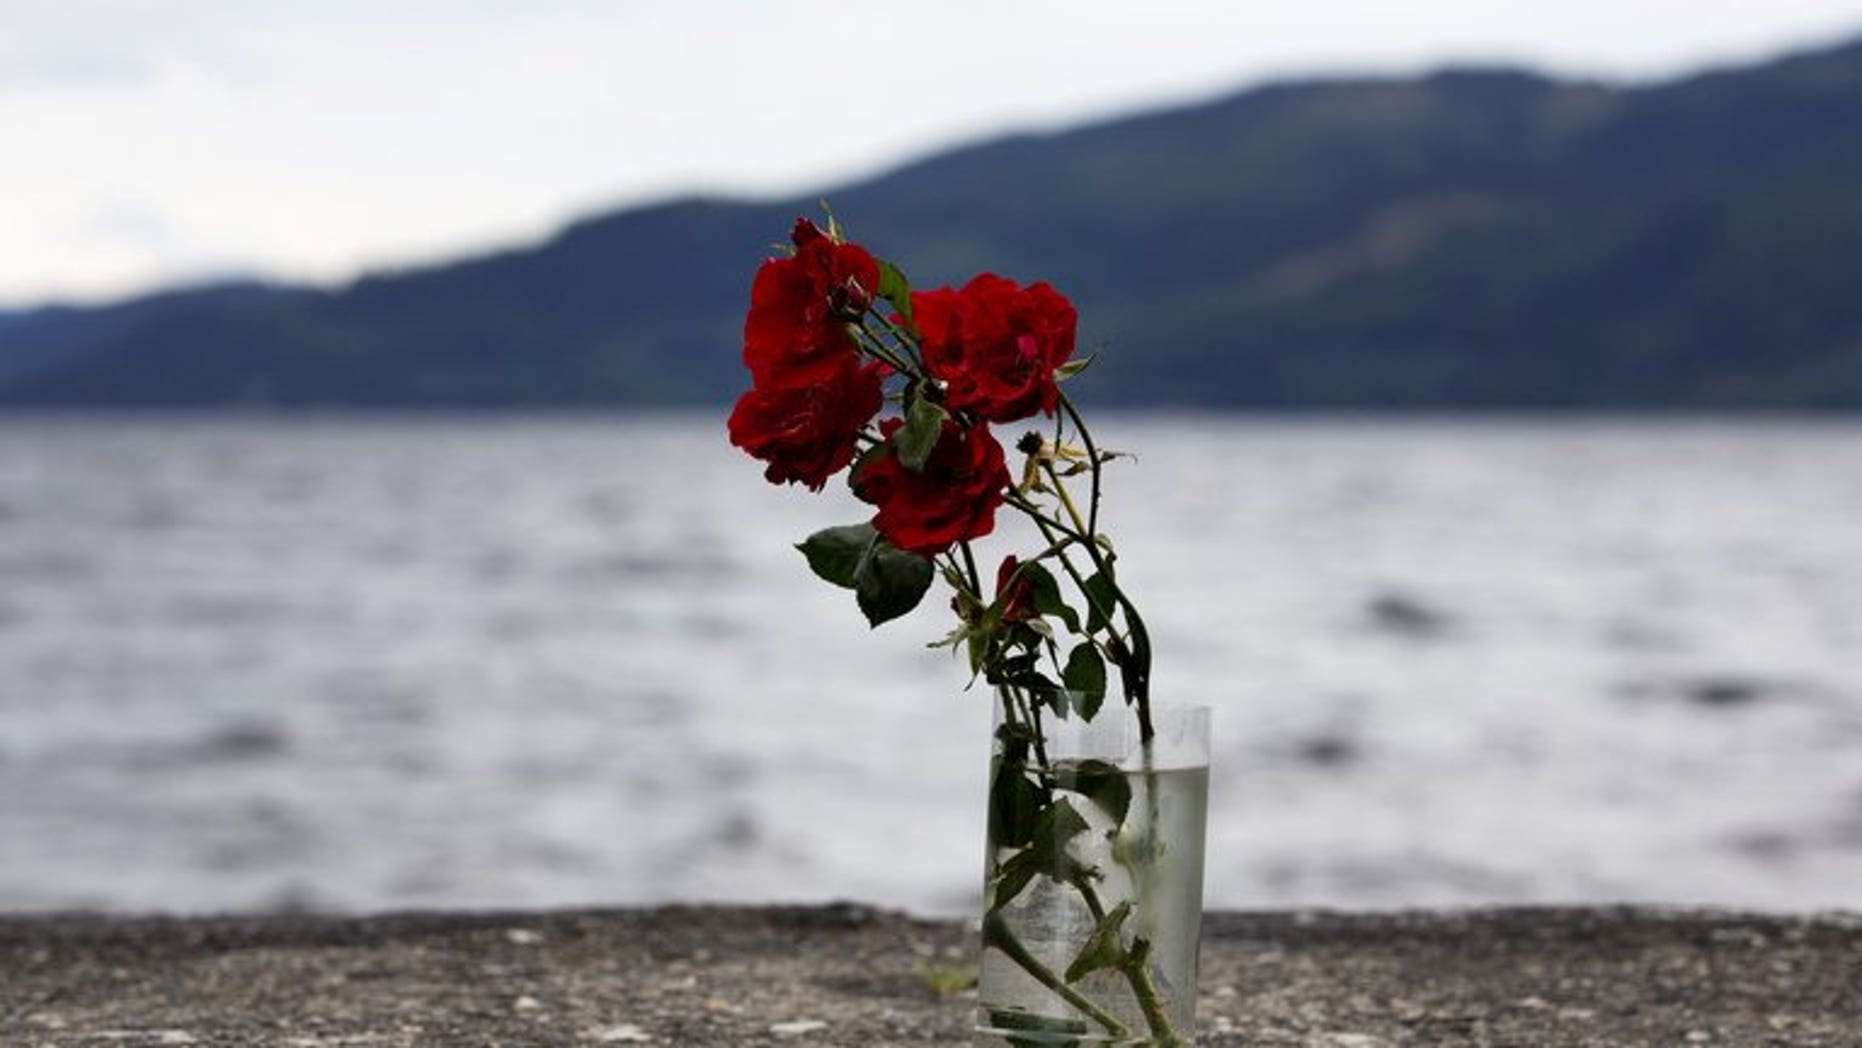 Flowers in a vase are pictured on the shores of Utoeya Island on July 22, 2012 where Anders Behring Breivik killed dozens at a Labor Party summer camp. The camp reconvened at a new site for the first time.